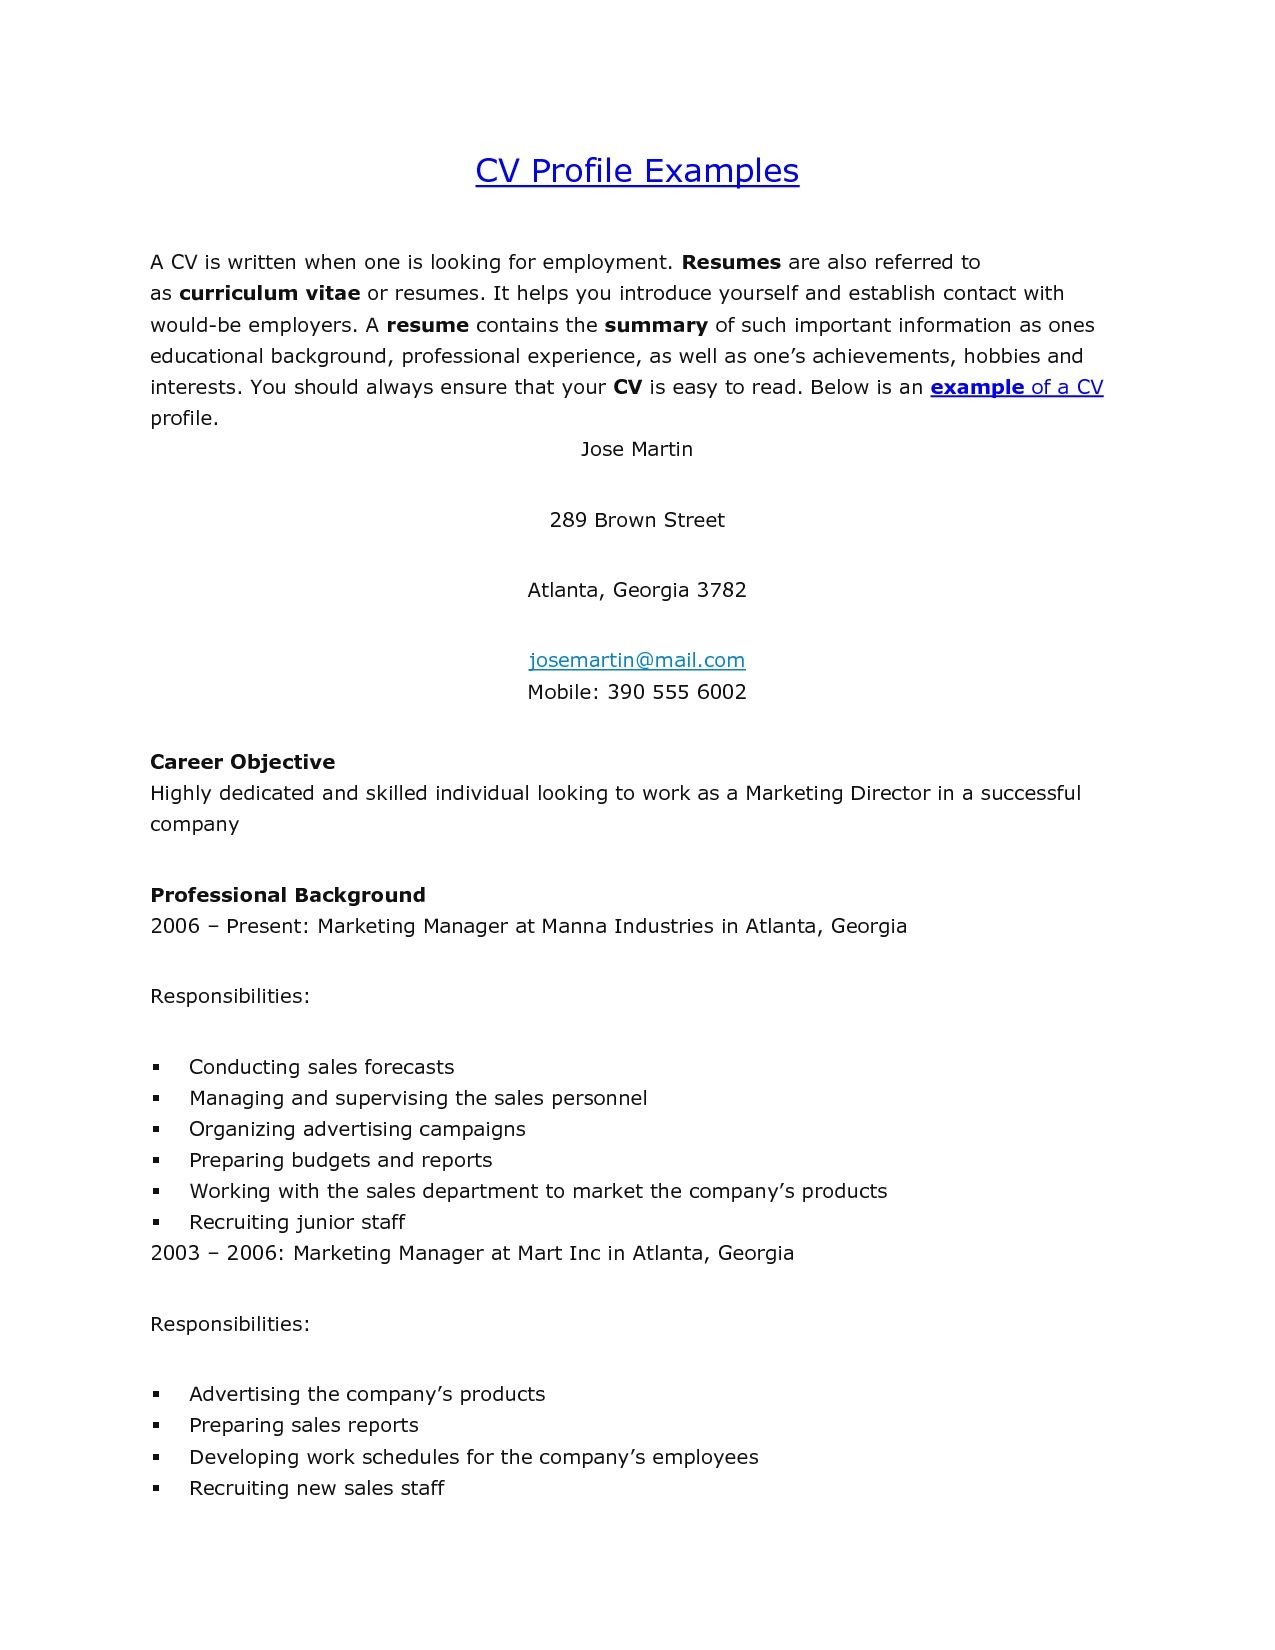 Profile Resume Examples Resume Professional Profile Examples Sample Experience Chartered